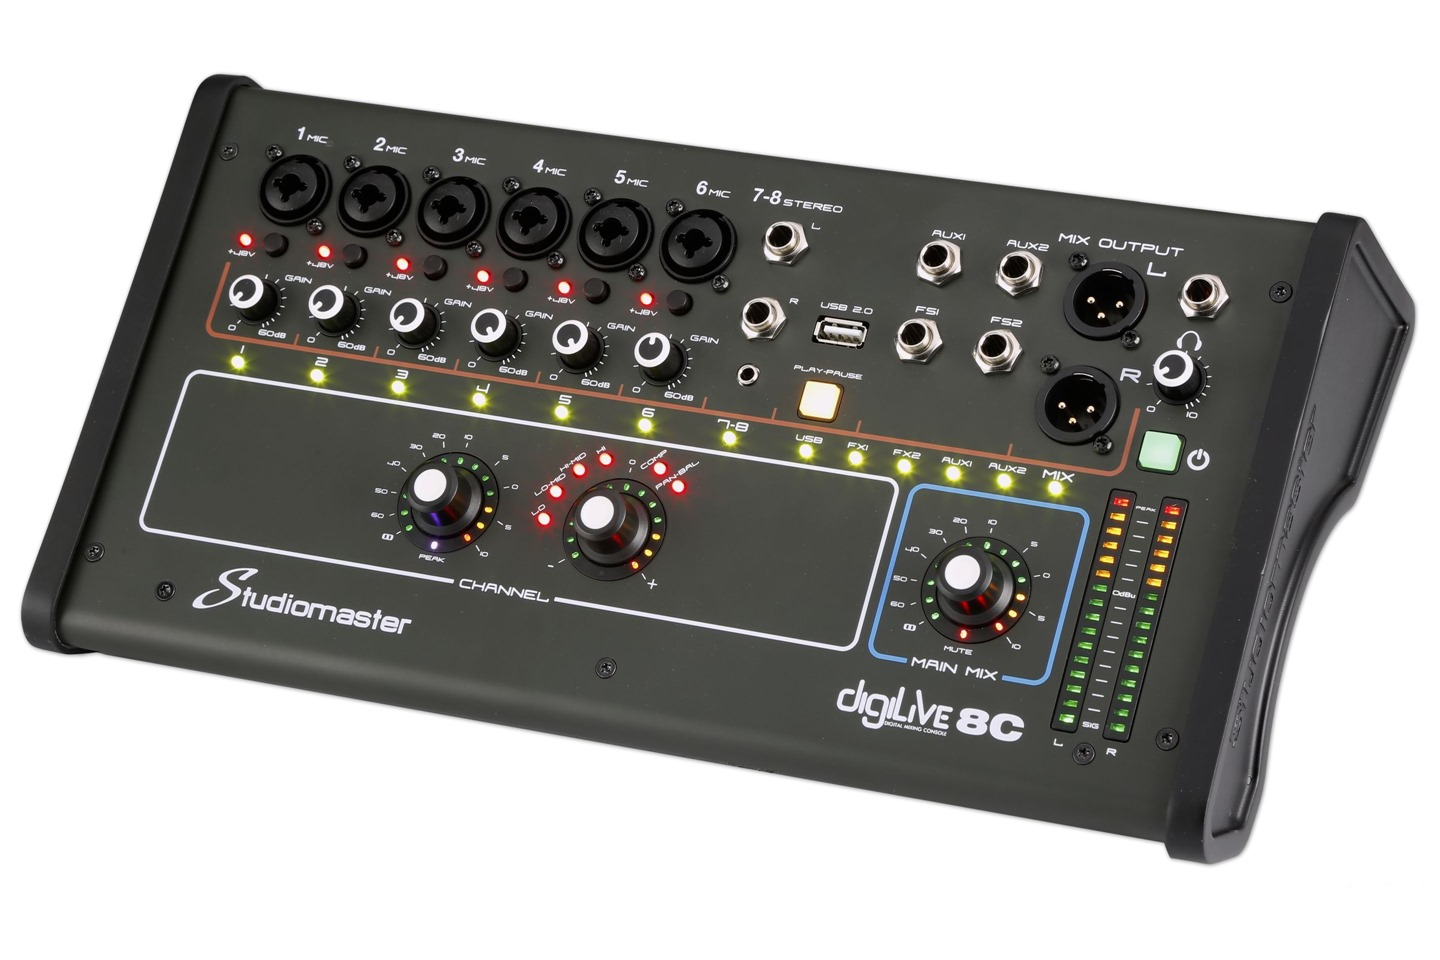 Studiomaster Digilive 8C right